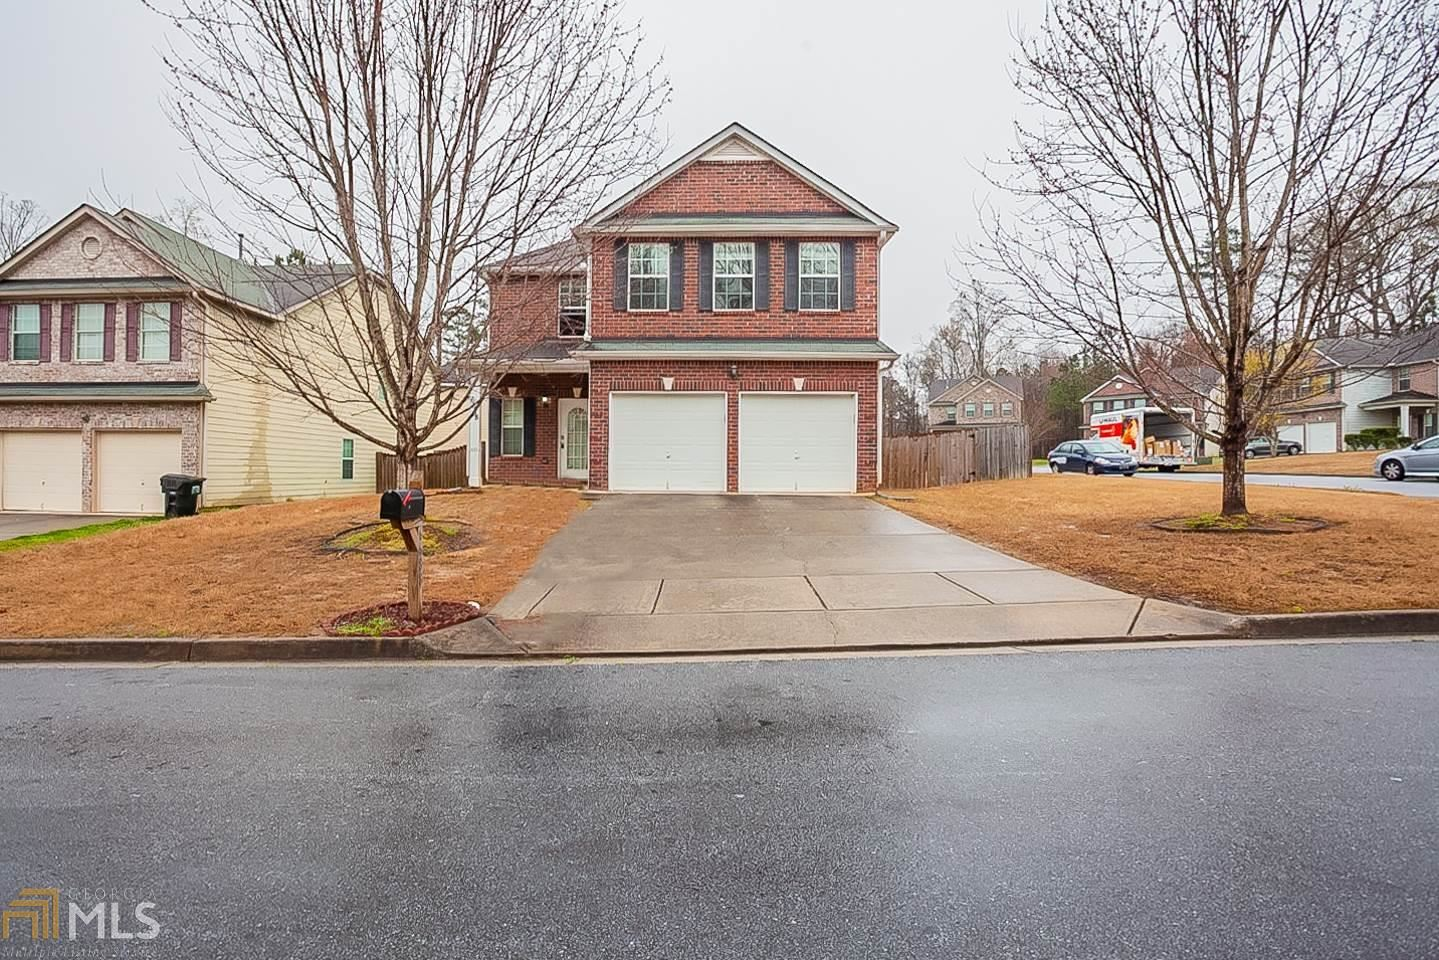 6688 St Jude, Fairburn, GA 30213 - #: 8944477